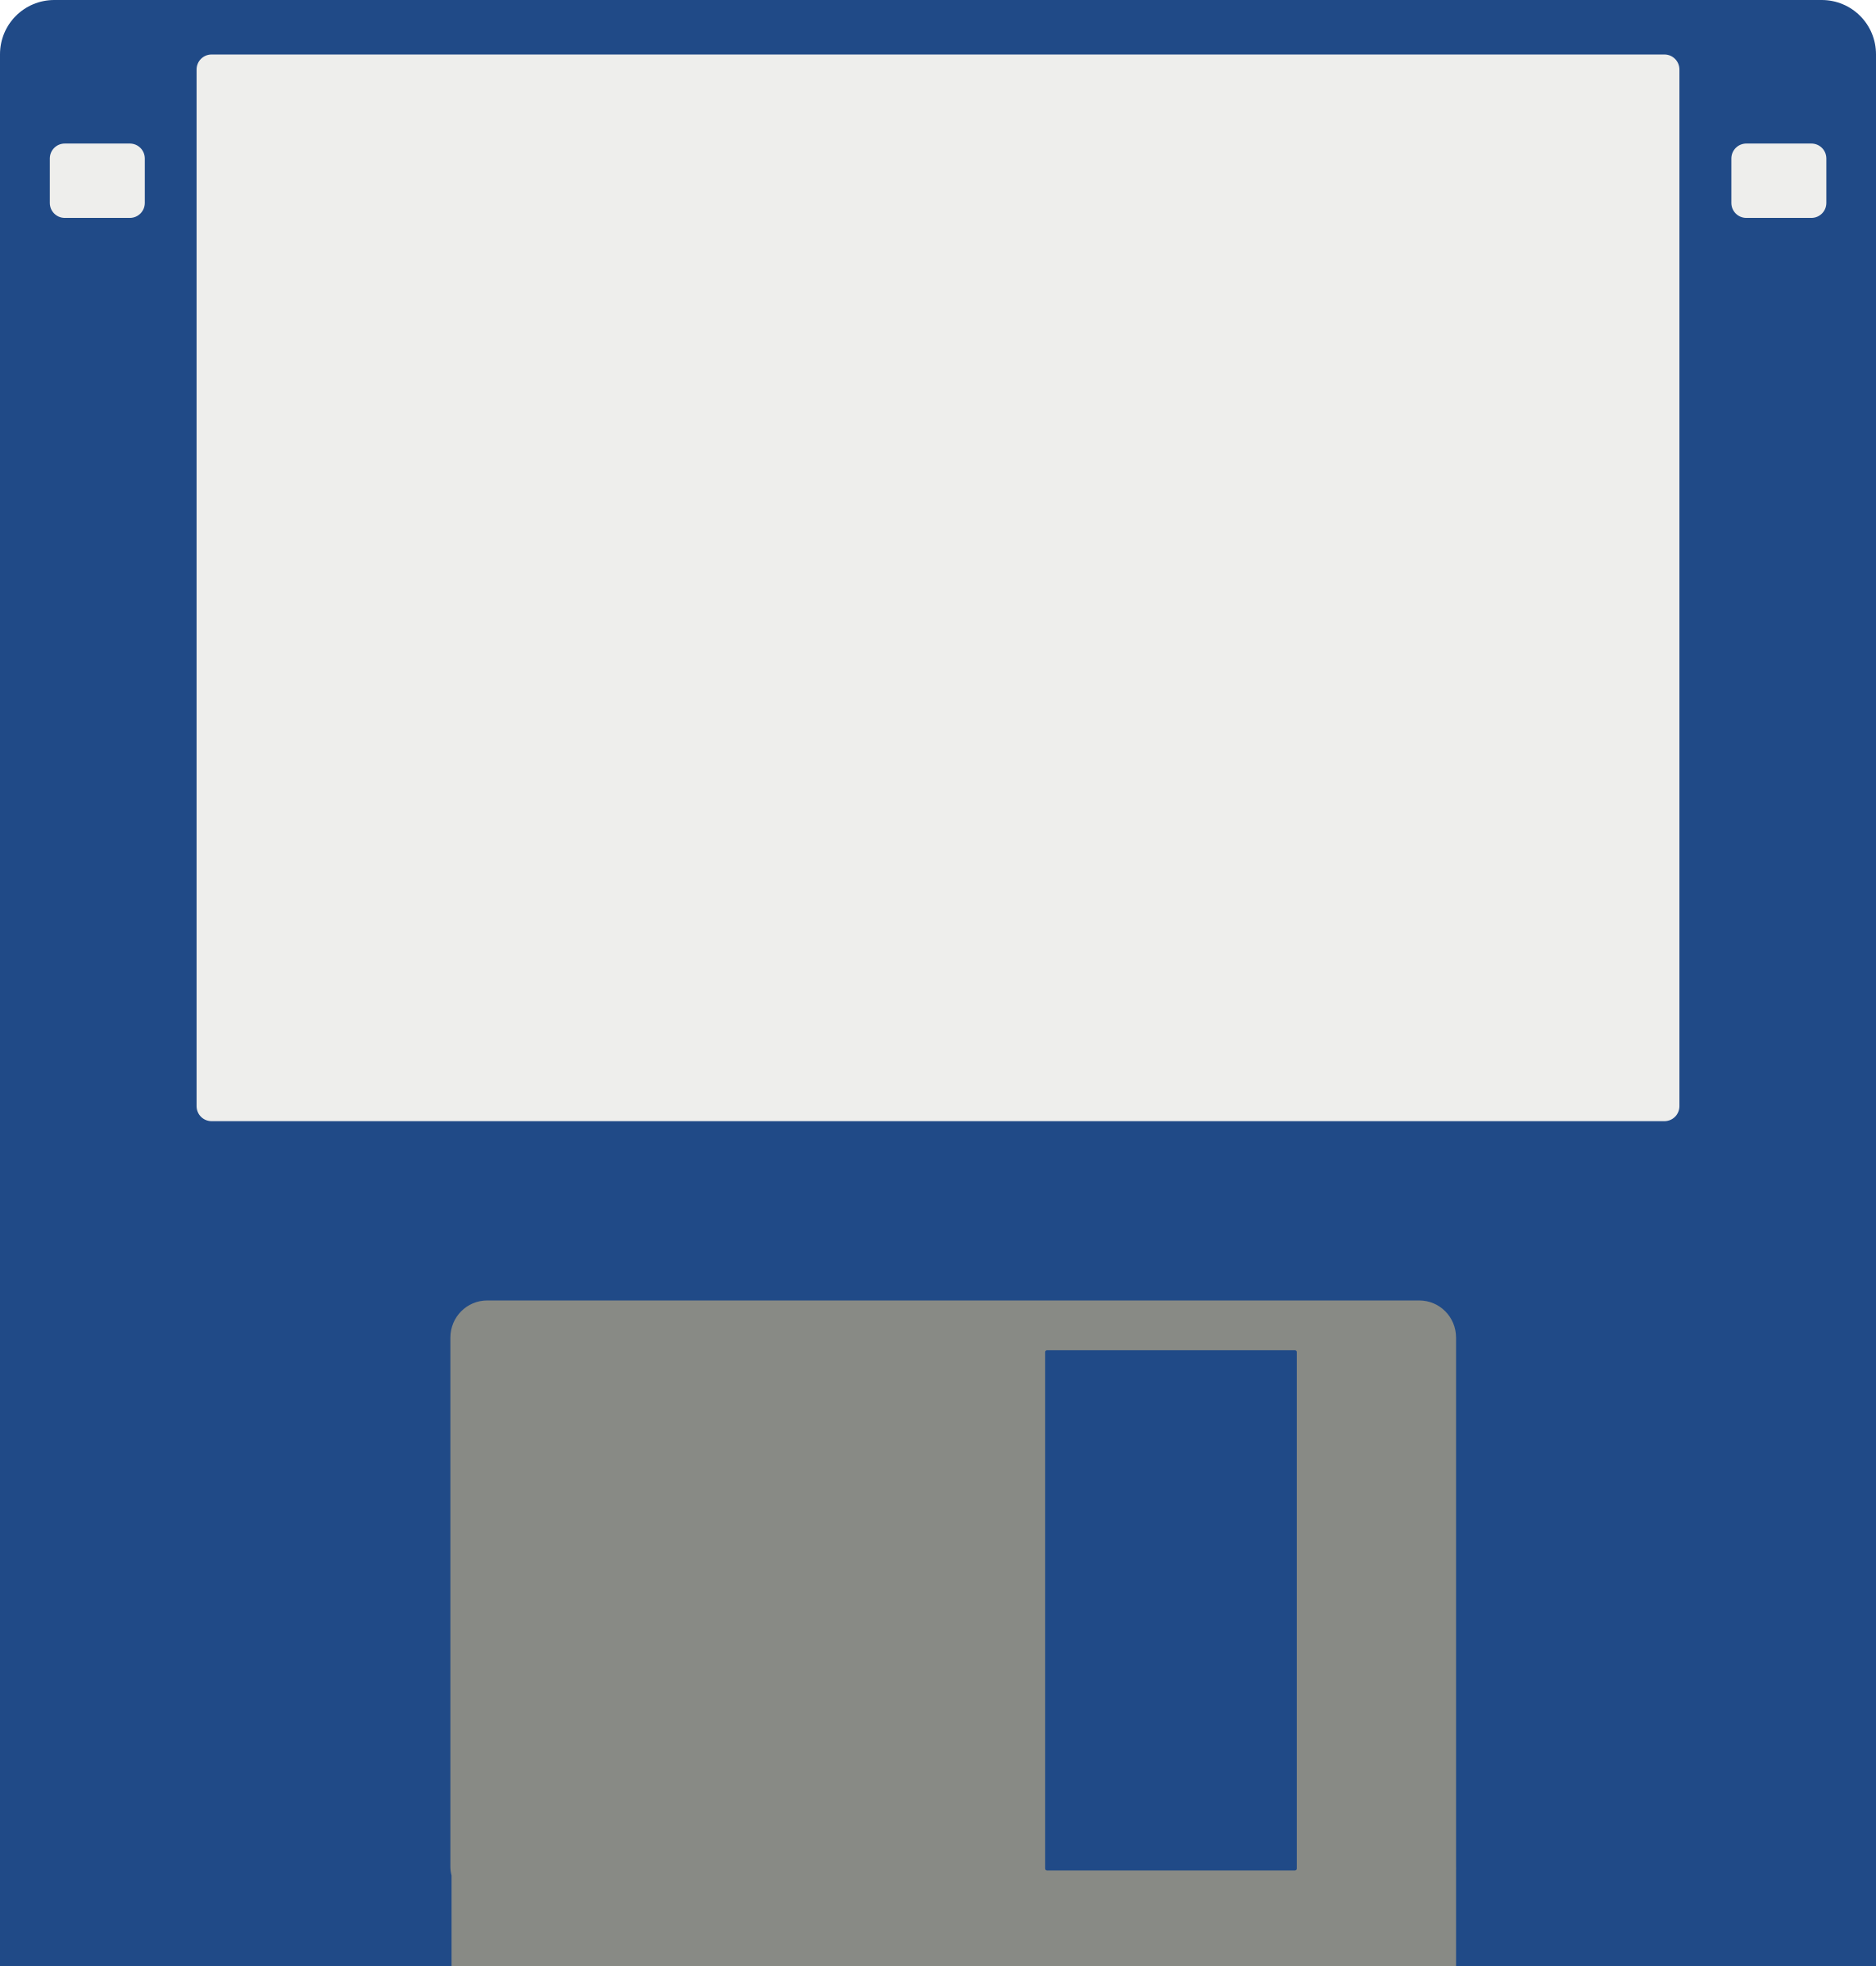 Floppy disk by vorre